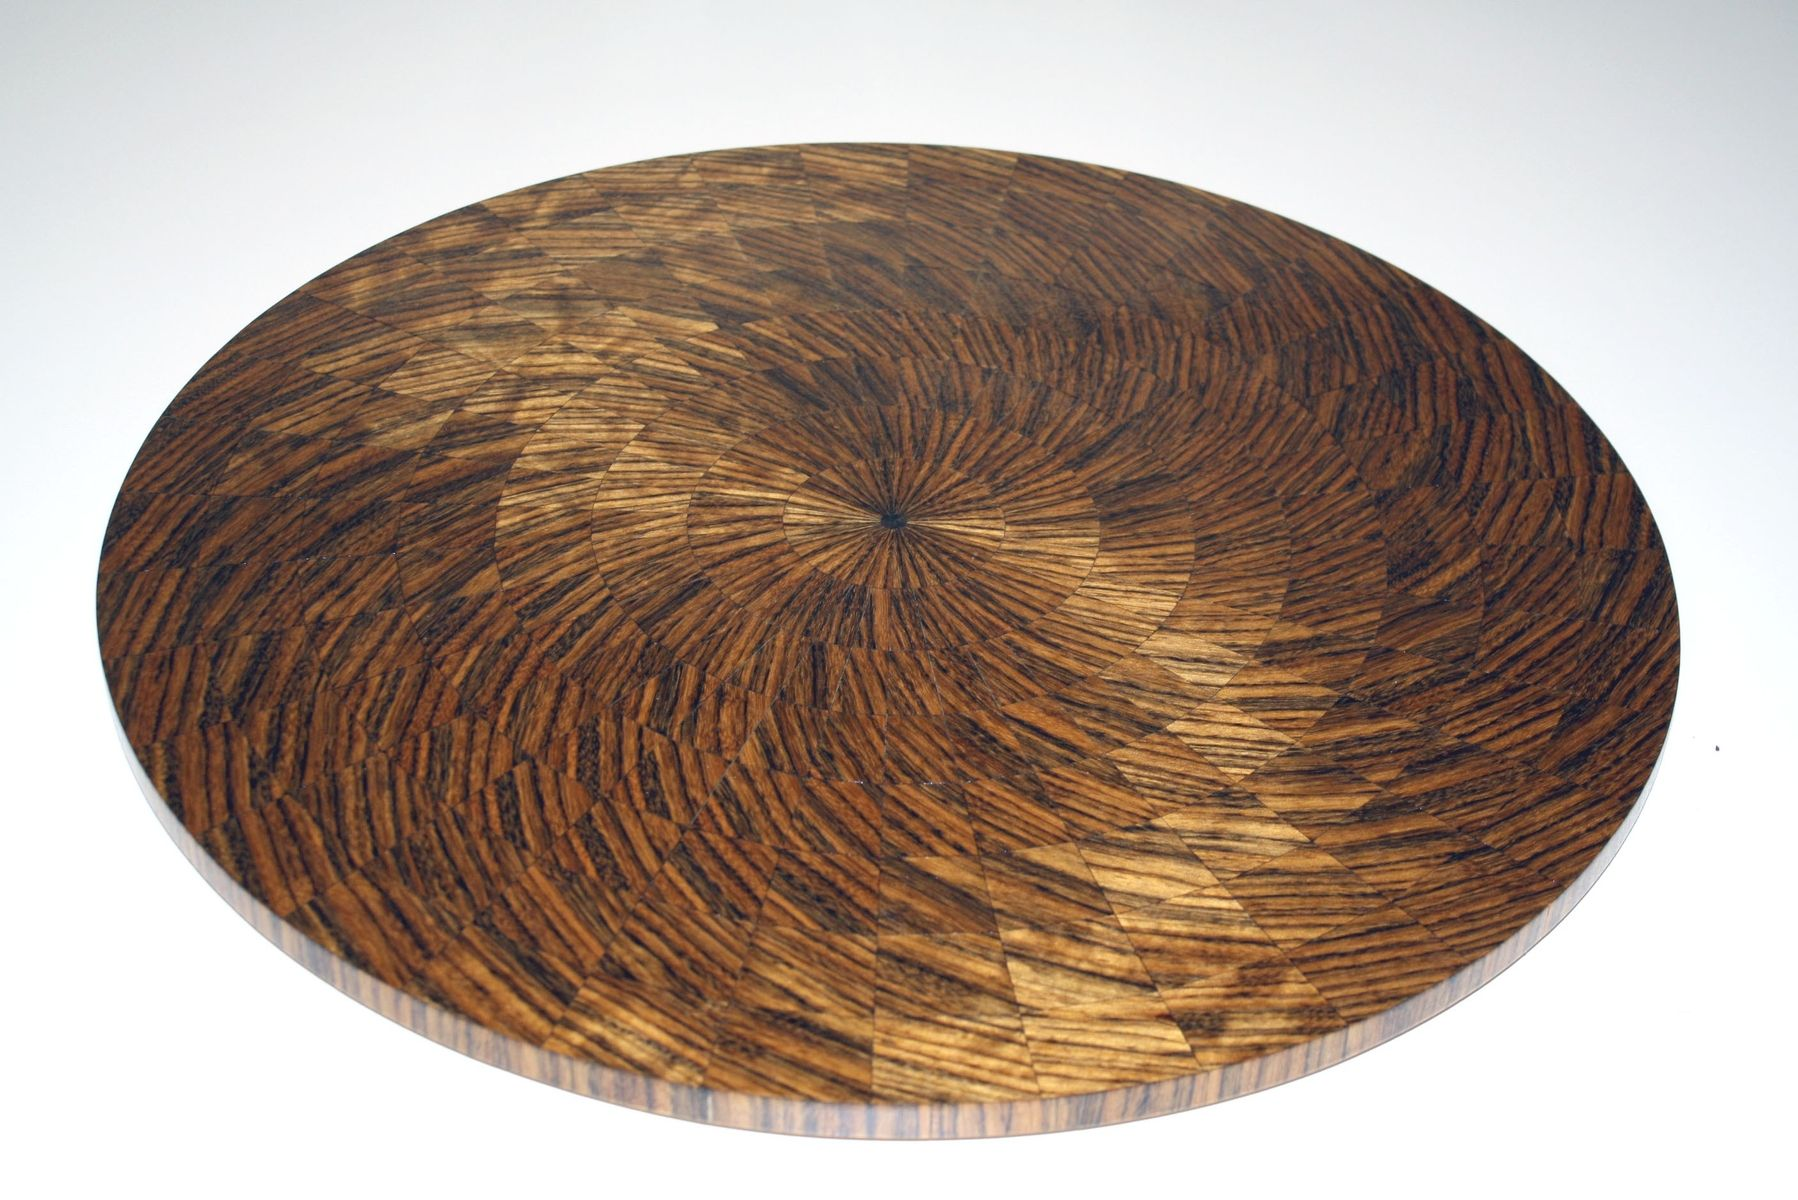 Handmade Moz Swirl Lazy Susan By Neerly Obsessed